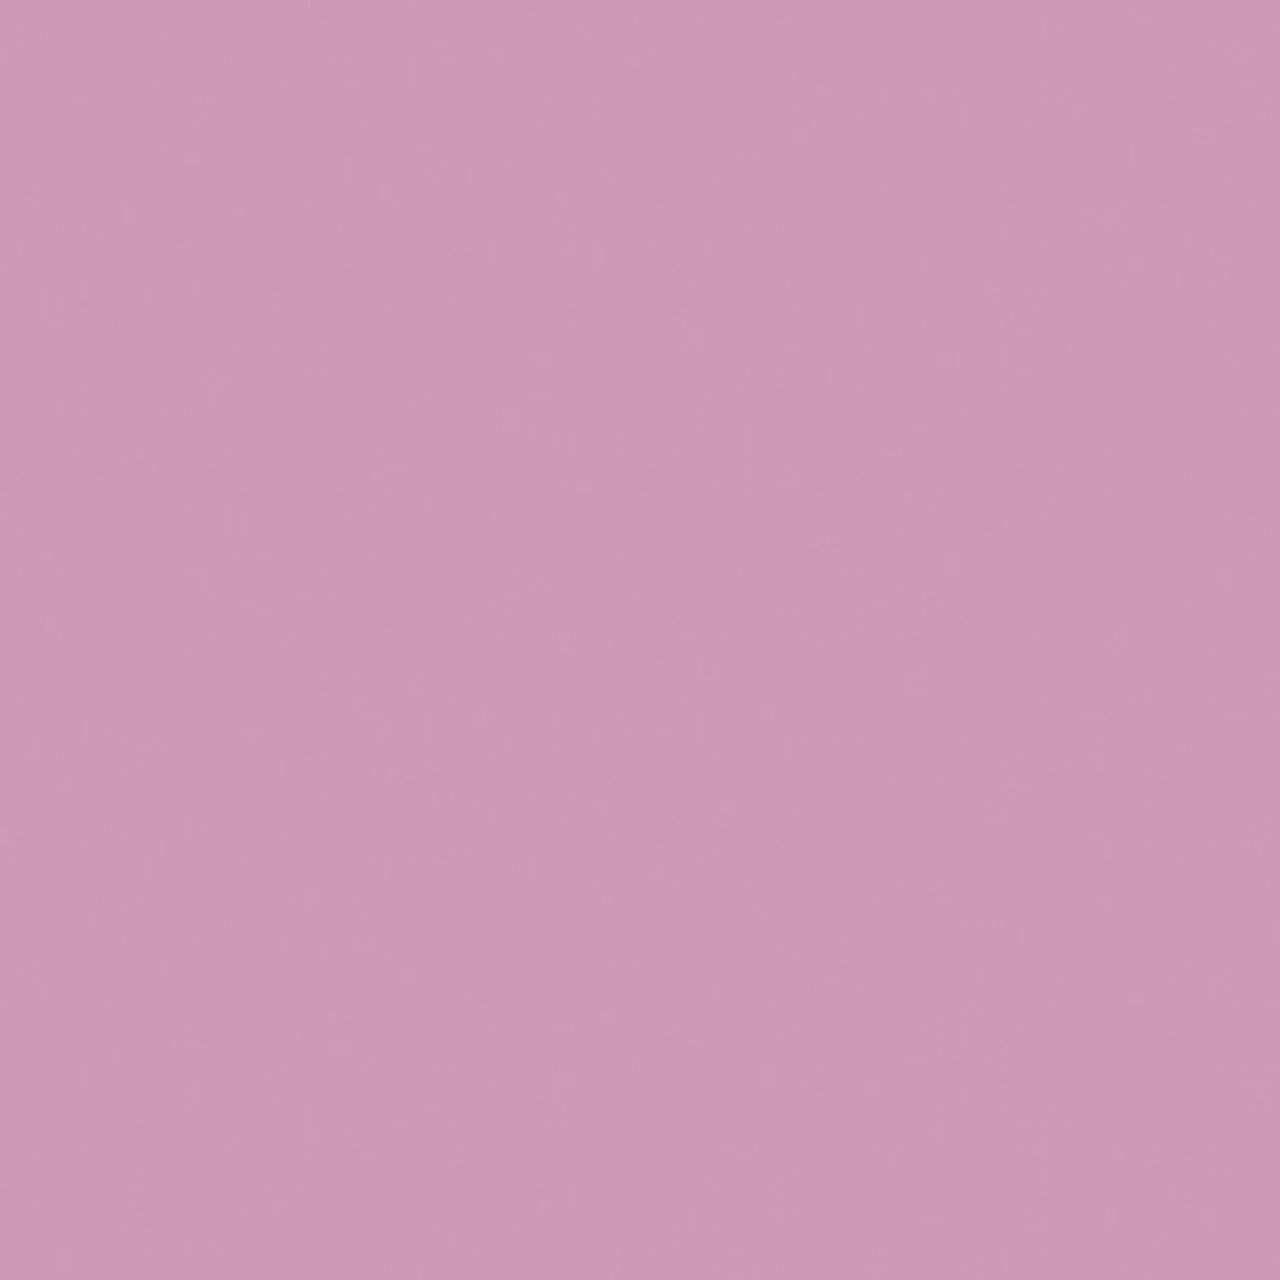 #0038 Rosco Gels Roscolux Light Rose, 20x24""